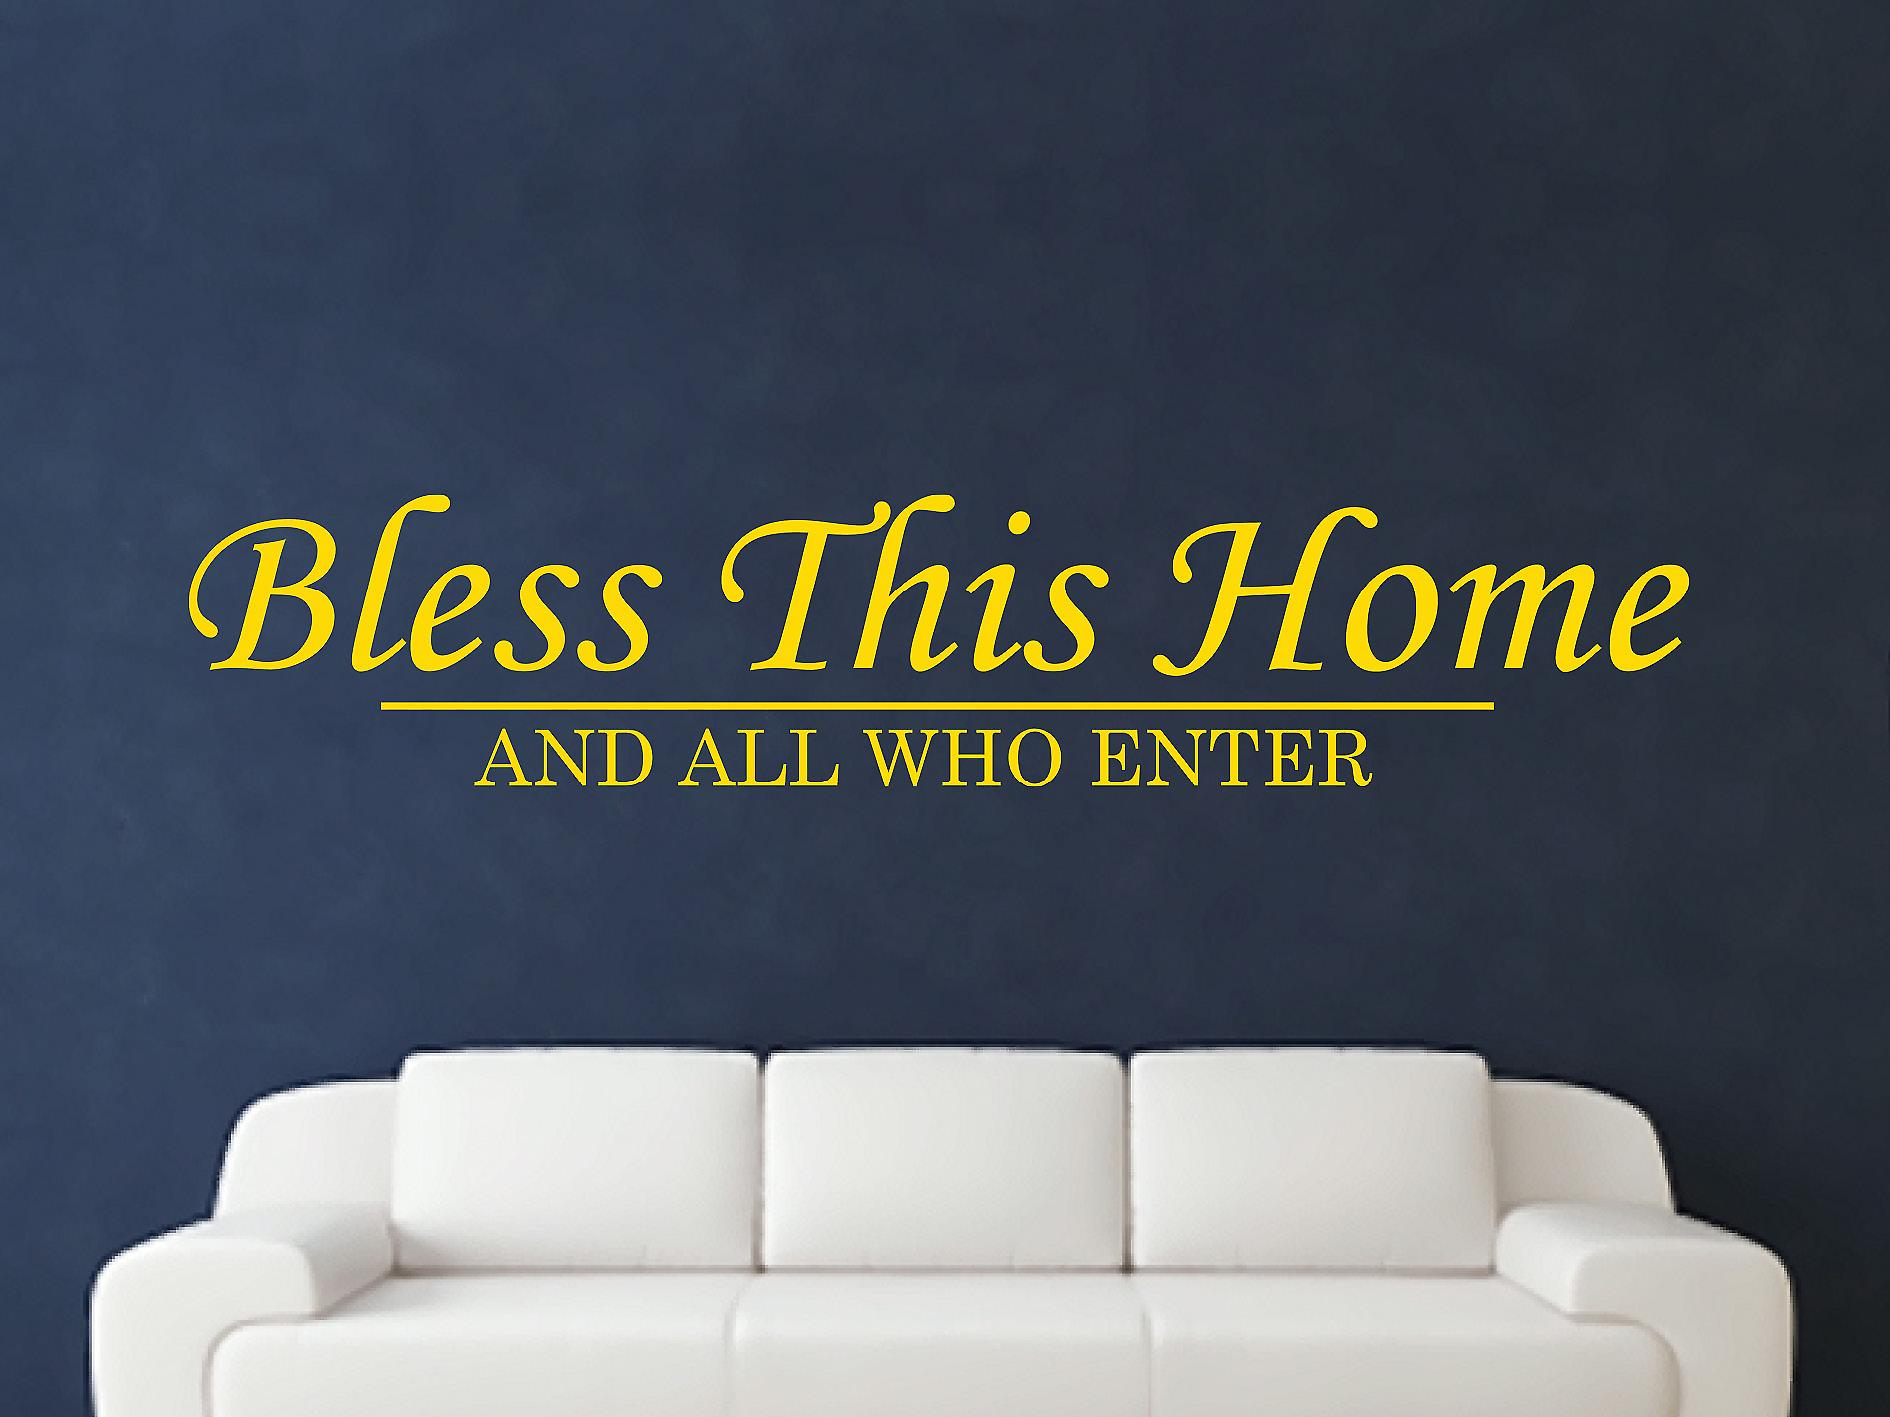 Bless This Home Wall Art Sticker - Dark Yellow